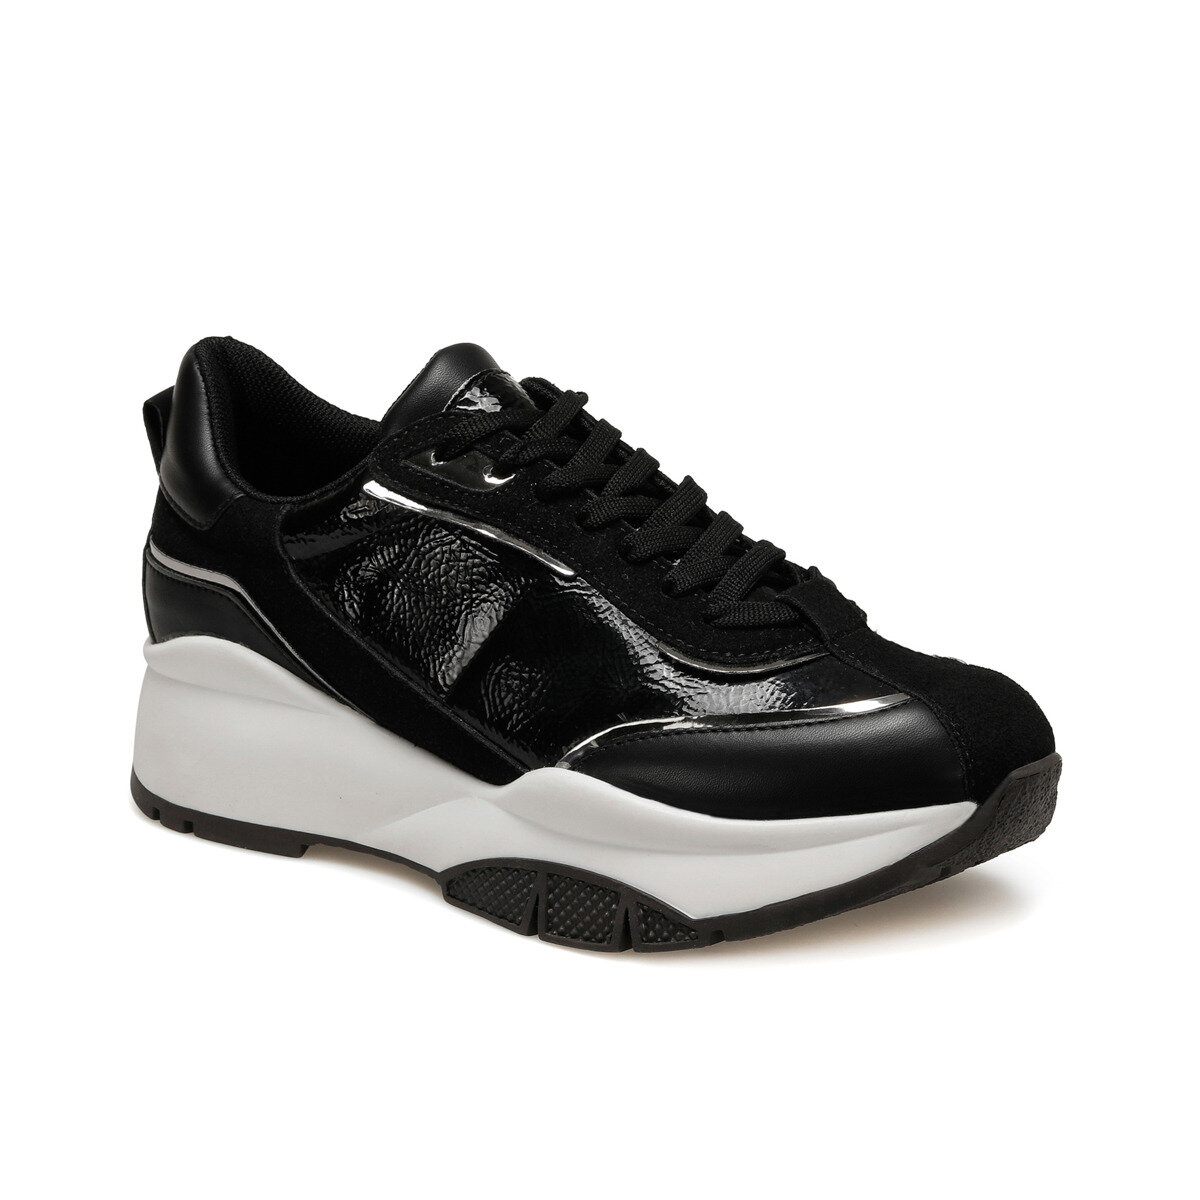 FLO 20S-423 Black Women 'S Sneaker Shoes BUTIGO